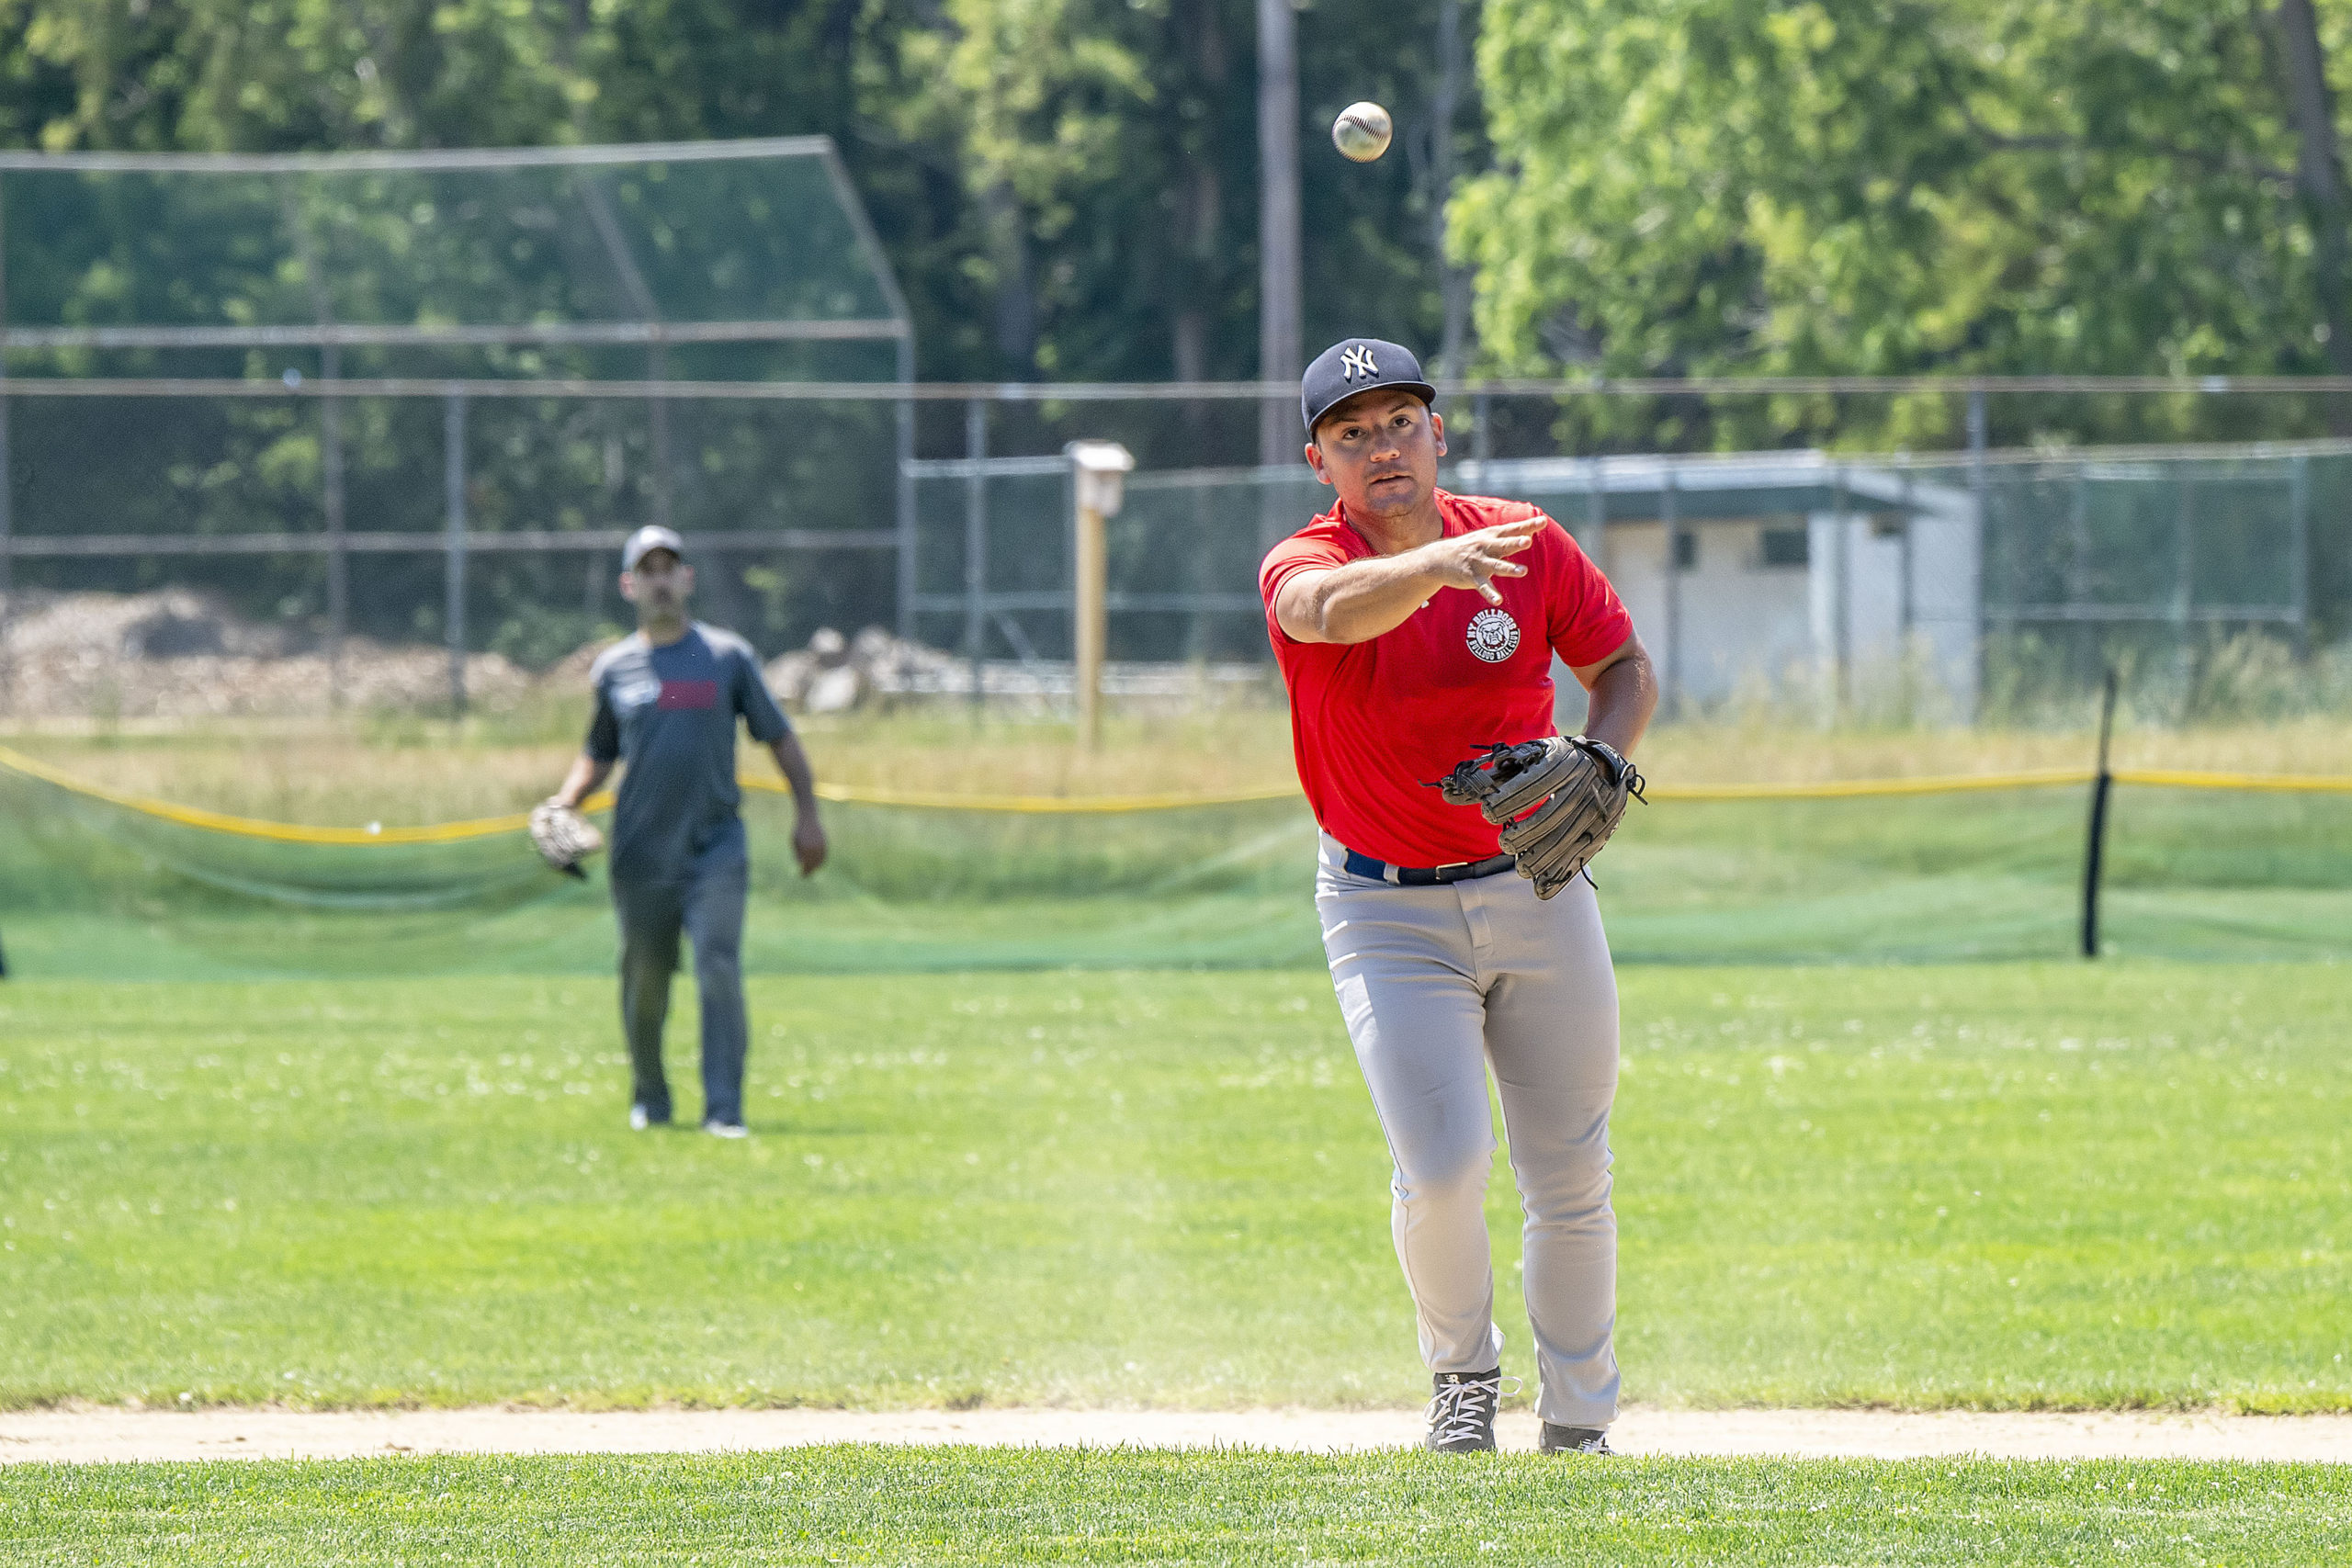 A Reds fielder throws to first base as the Hamptons Adult Hardball League South Fork Giants took on the New York Reds during the league's inaugural game at Mashashimuet Park in Sag Harbor on Sunday.